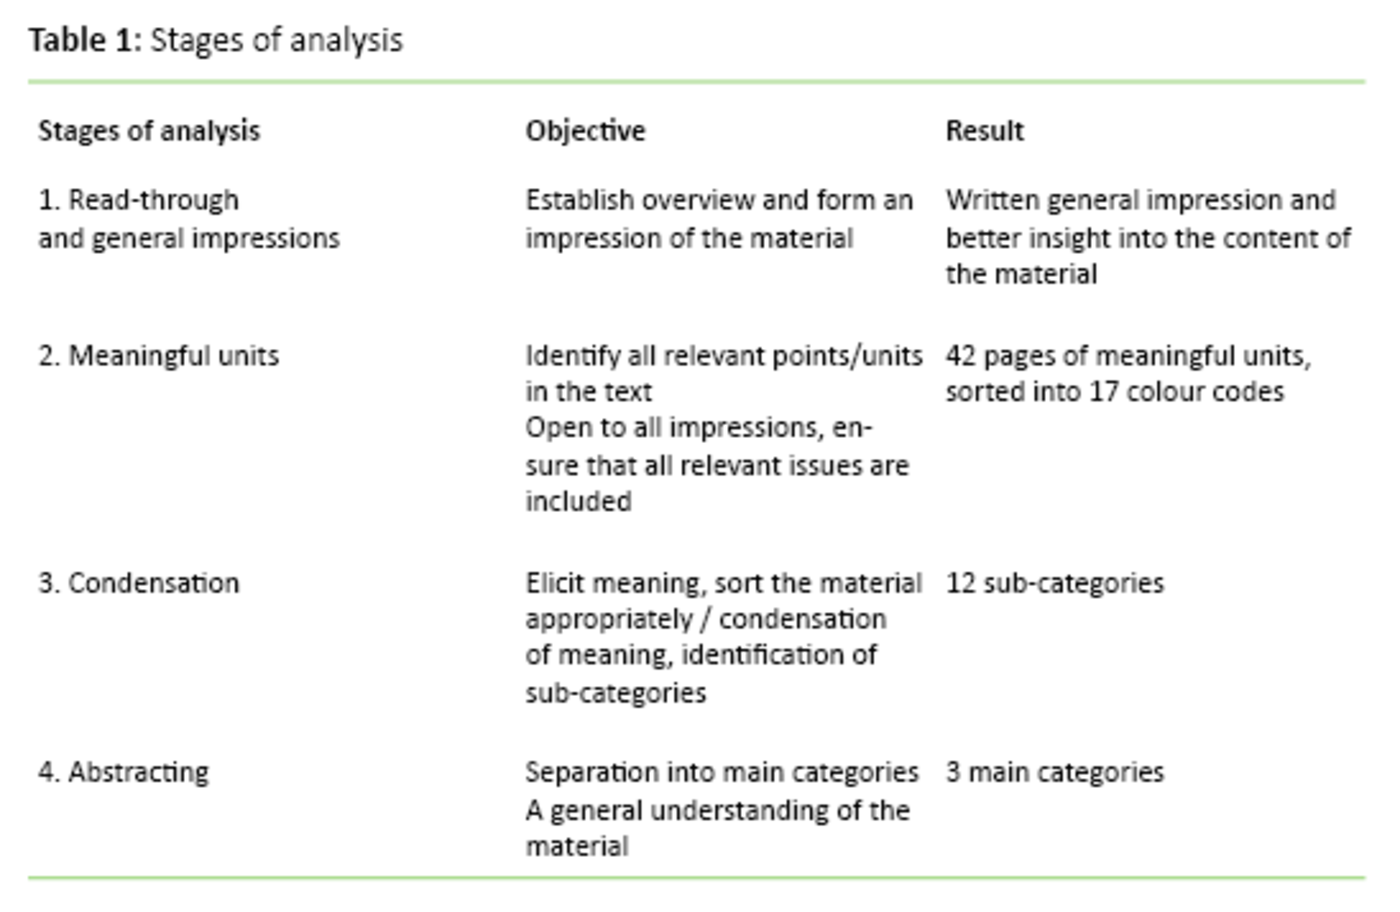 Table 1: Stages of analysis